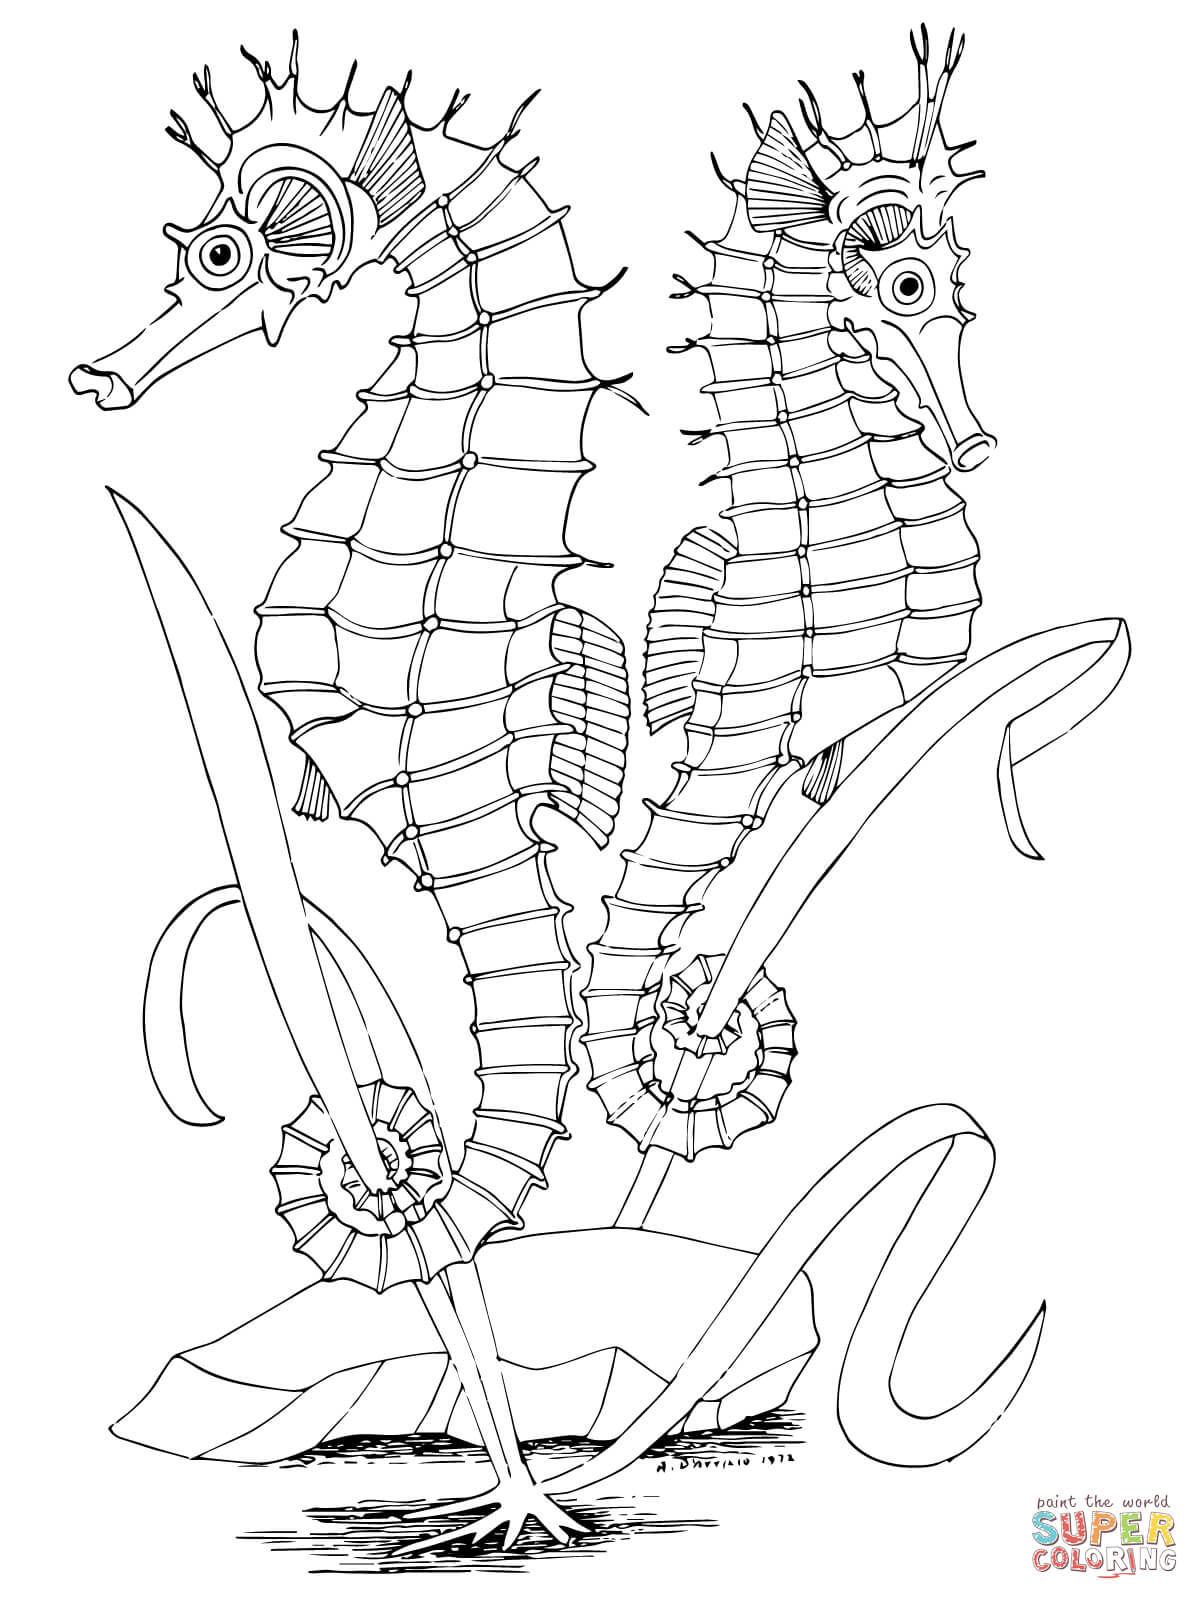 seahorse coloring pages to print printable seahorse coloring pages for kids cool2bkids seahorse coloring pages print to